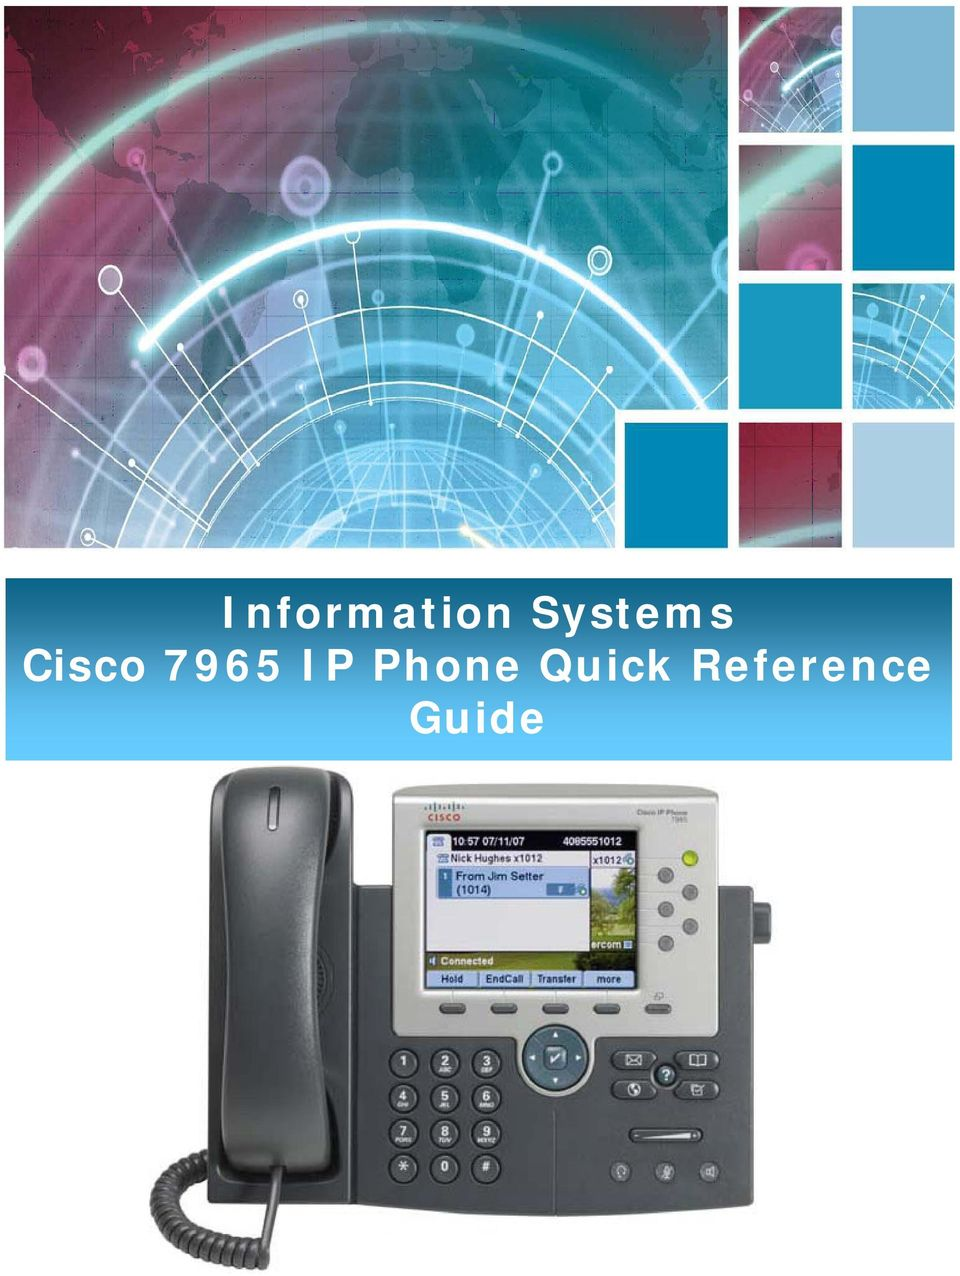 Information Systems Cisco 7965 IP Phone Quick Reference Guide - PDF